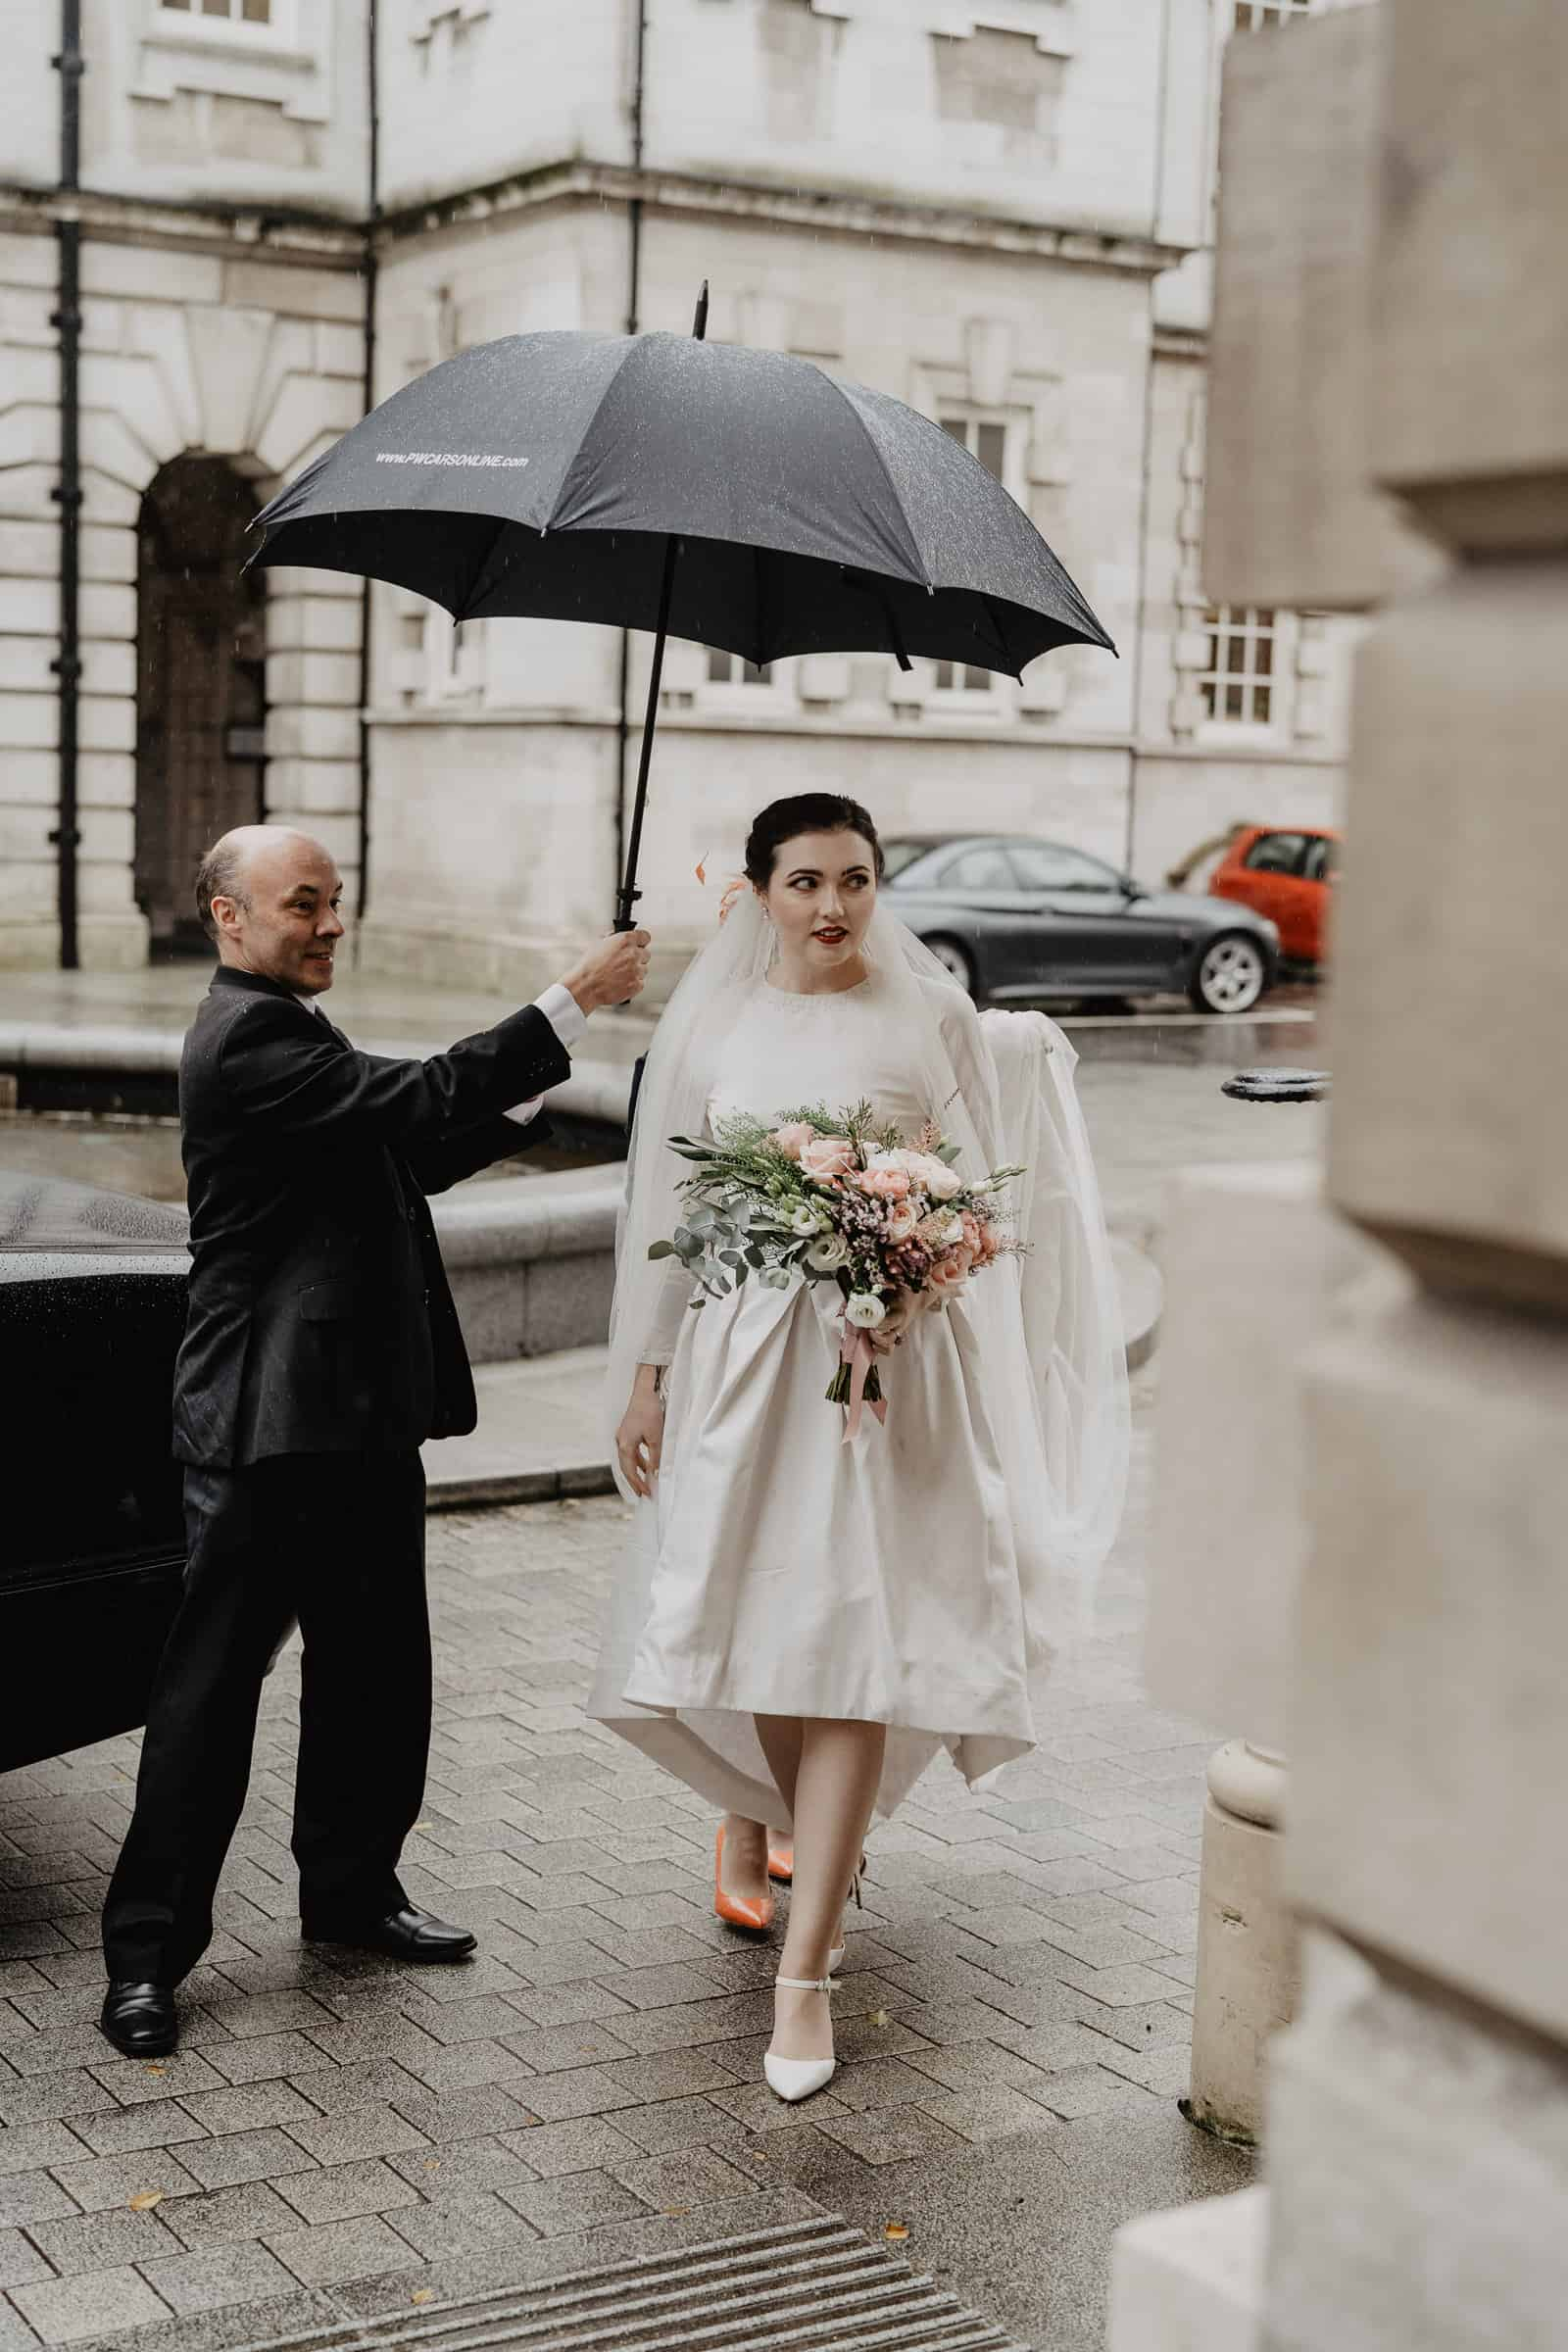 Bride walking into city hall with umbrella covering her